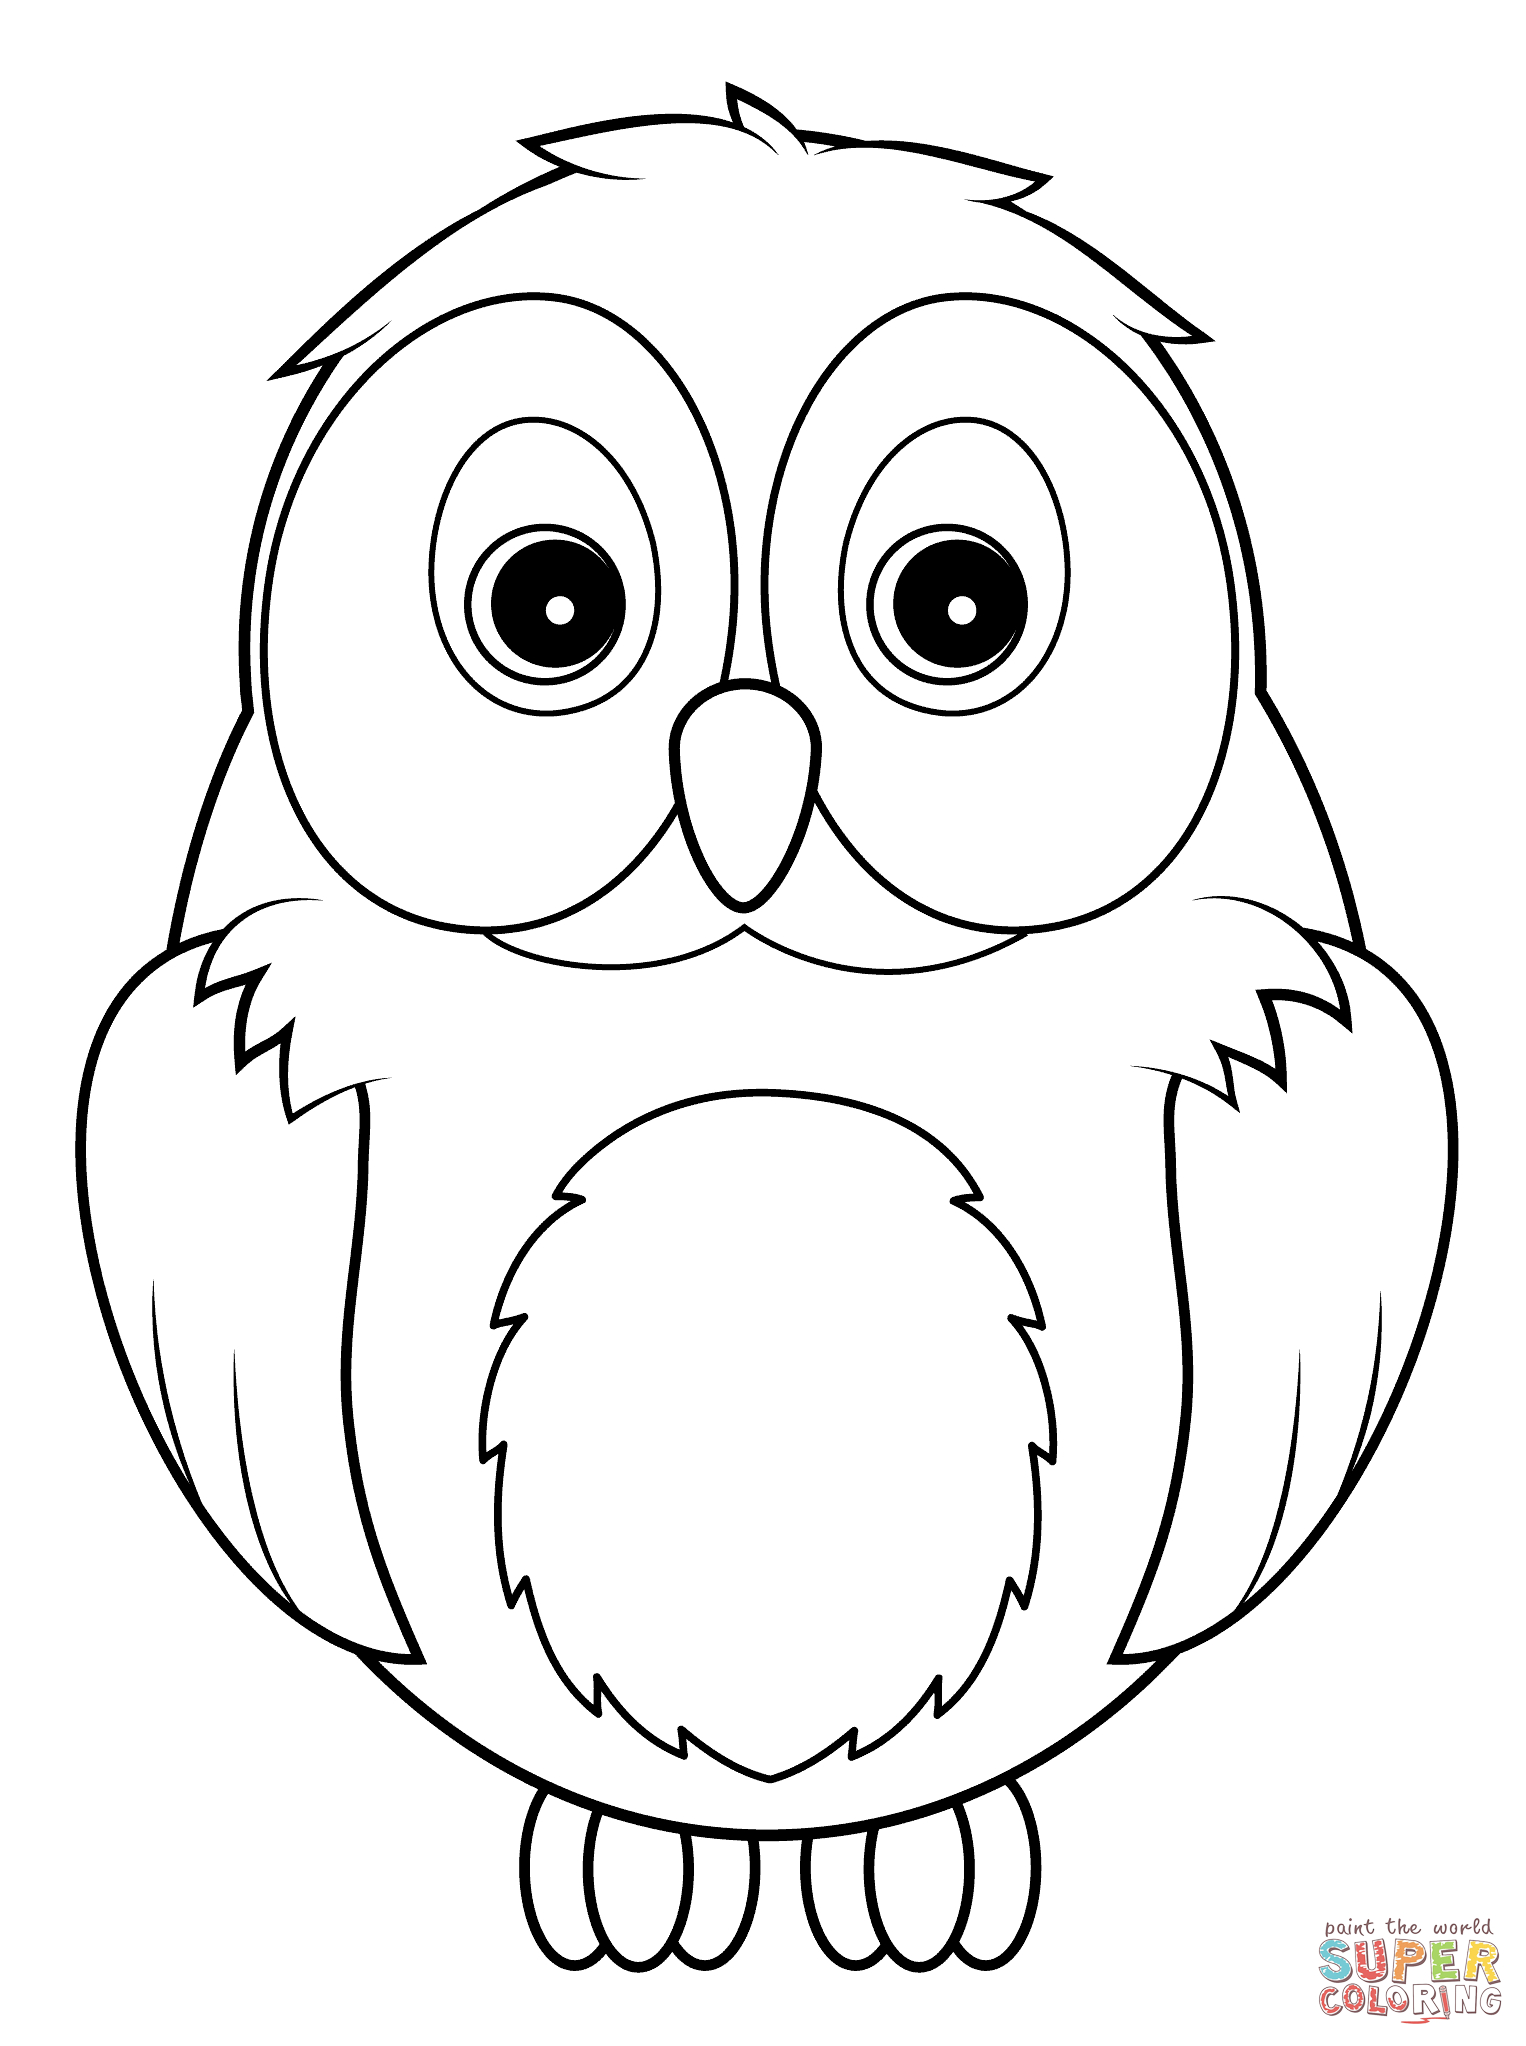 Cute Owl Coloring Page | Free Printable Coloring Pages - Free Printable Owl Coloring Sheets